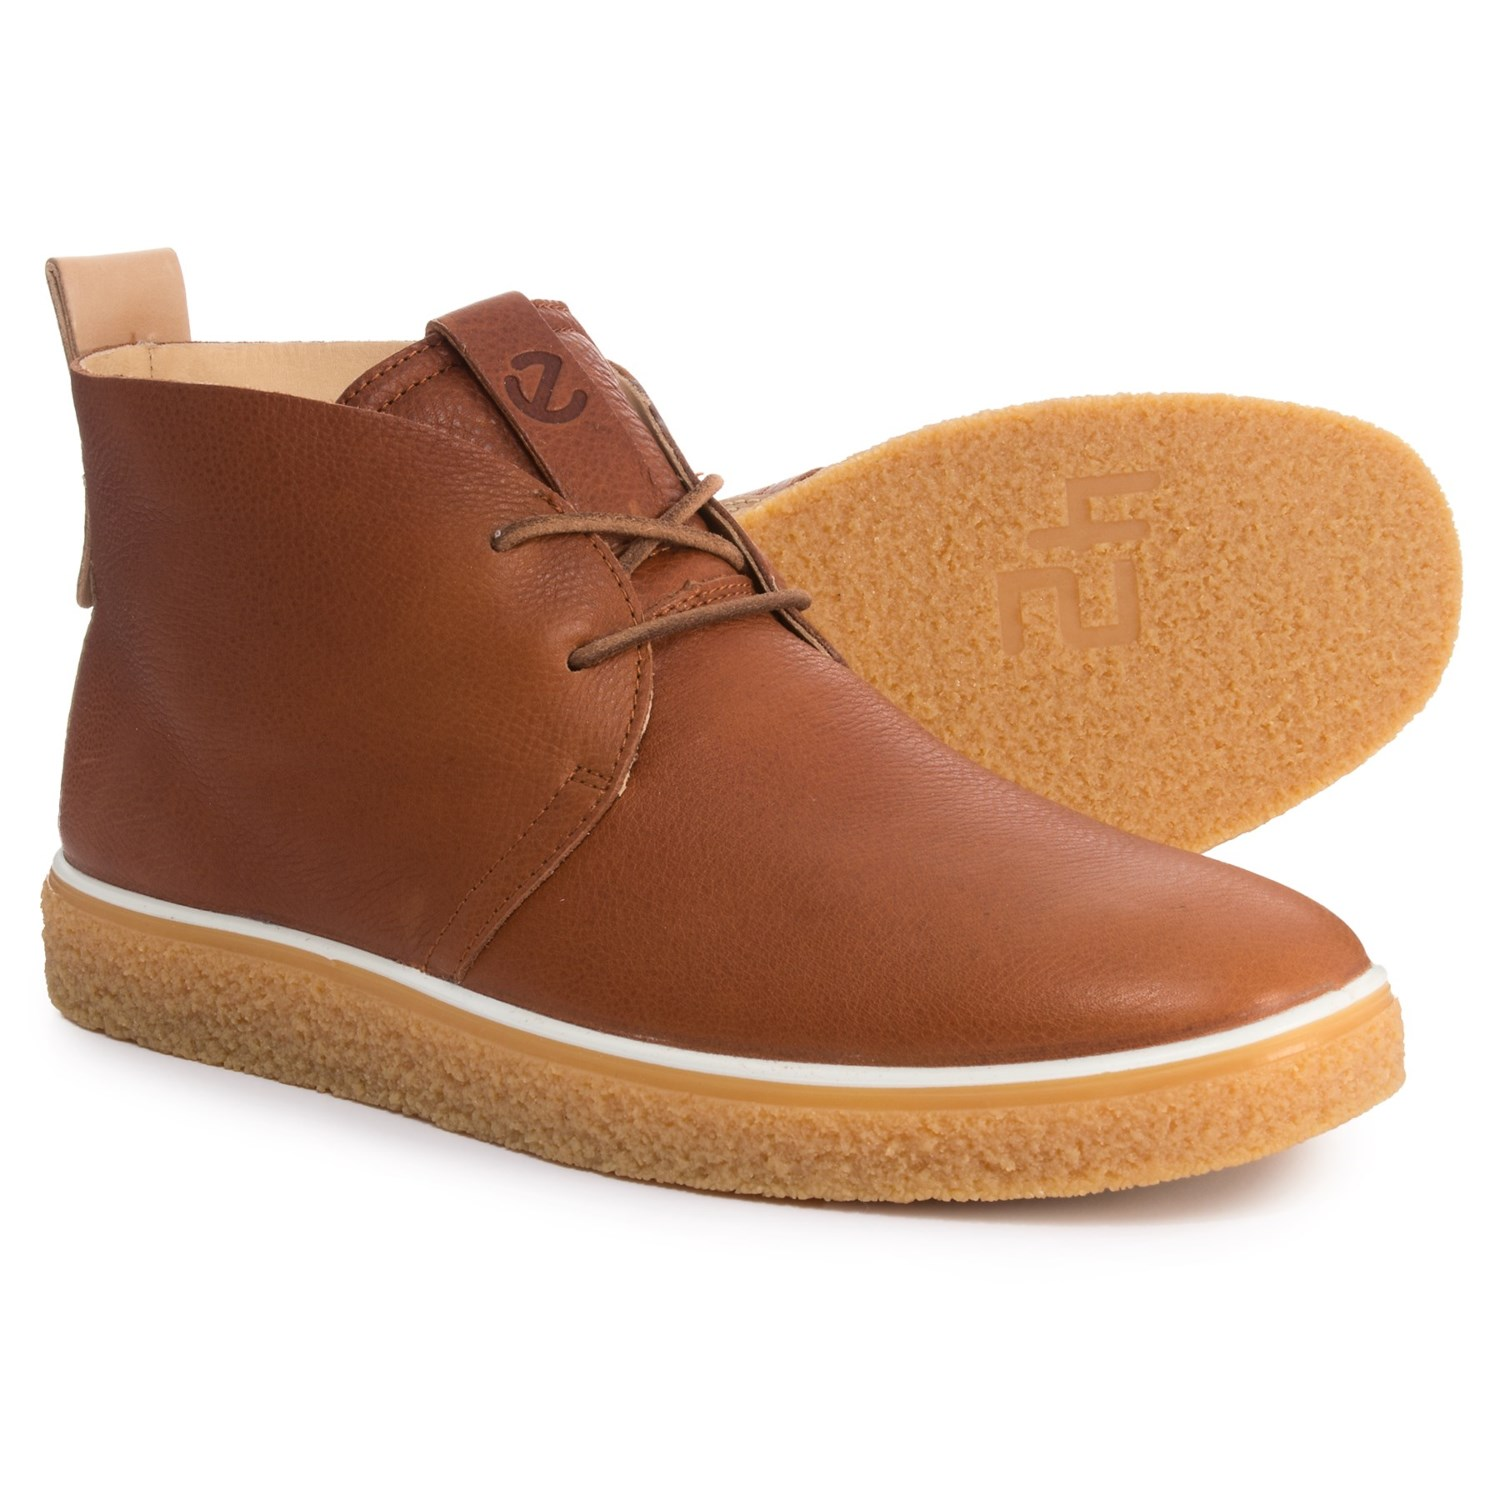 92f0c62786 ECCO Crepe Tray Chukka Boots - Leather (For Men)